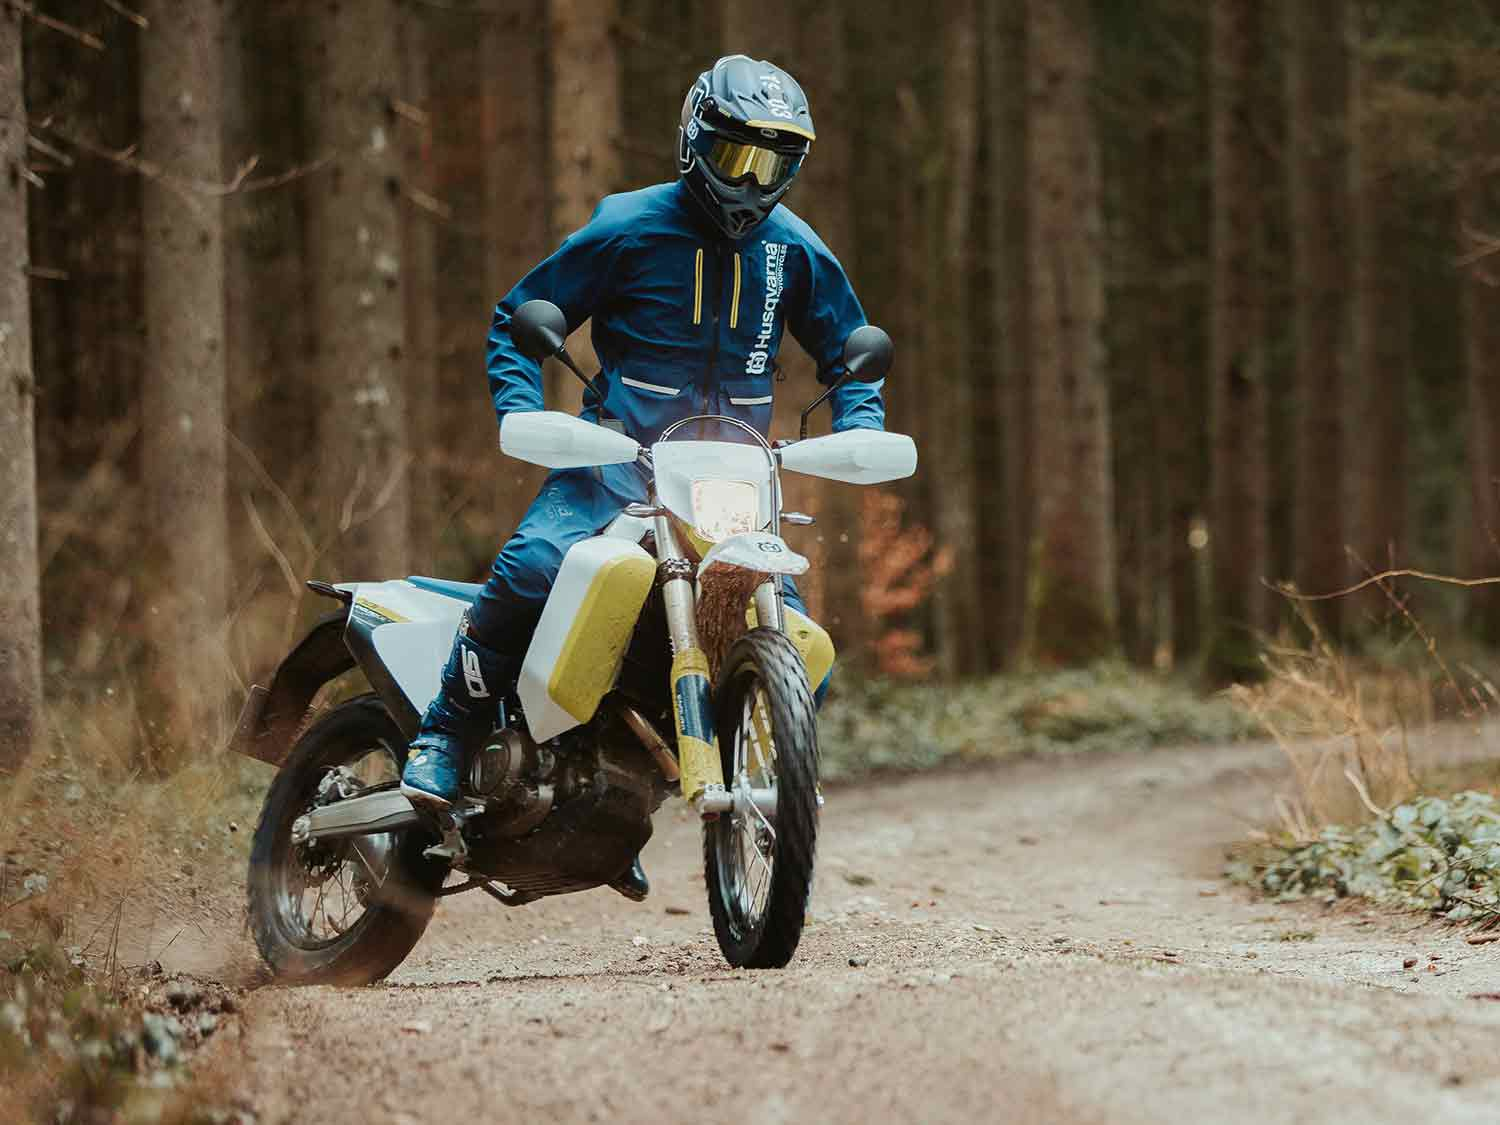 ABS can be disengaged for more fun off road.